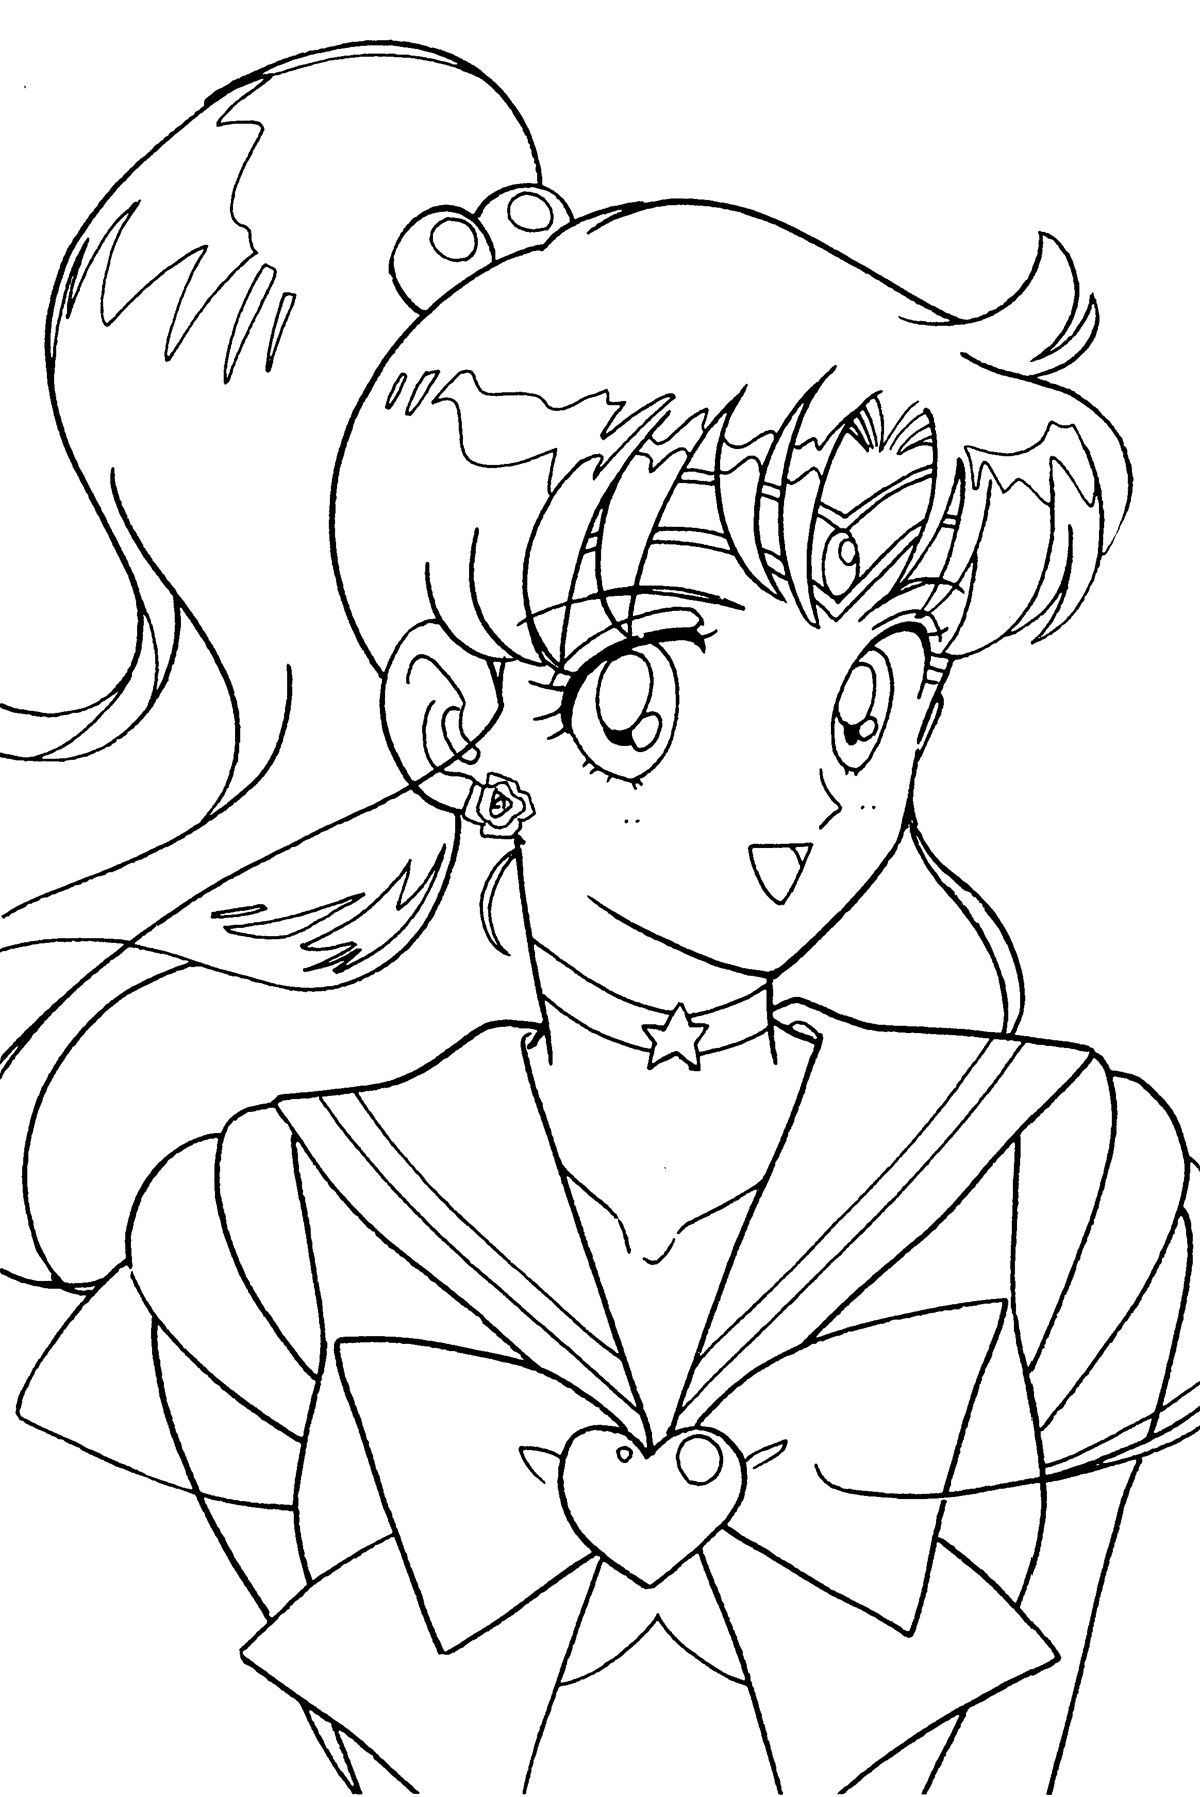 Pin de Wolfie en embroidery patterns | Pinterest | Sailor moon, Dibu ...